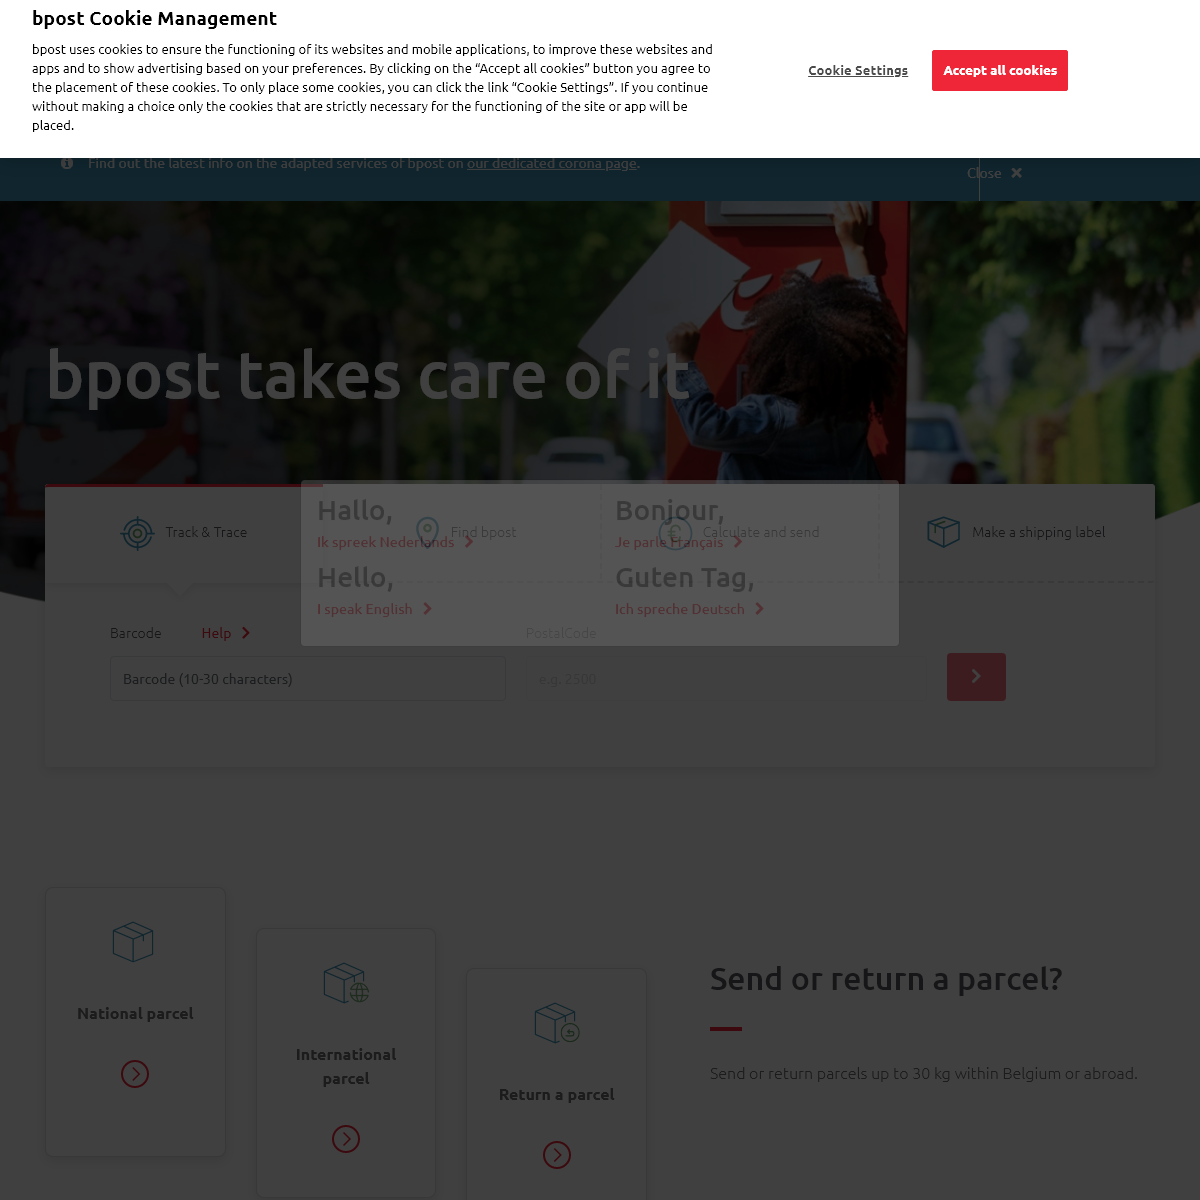 bpost will see to it - bpost